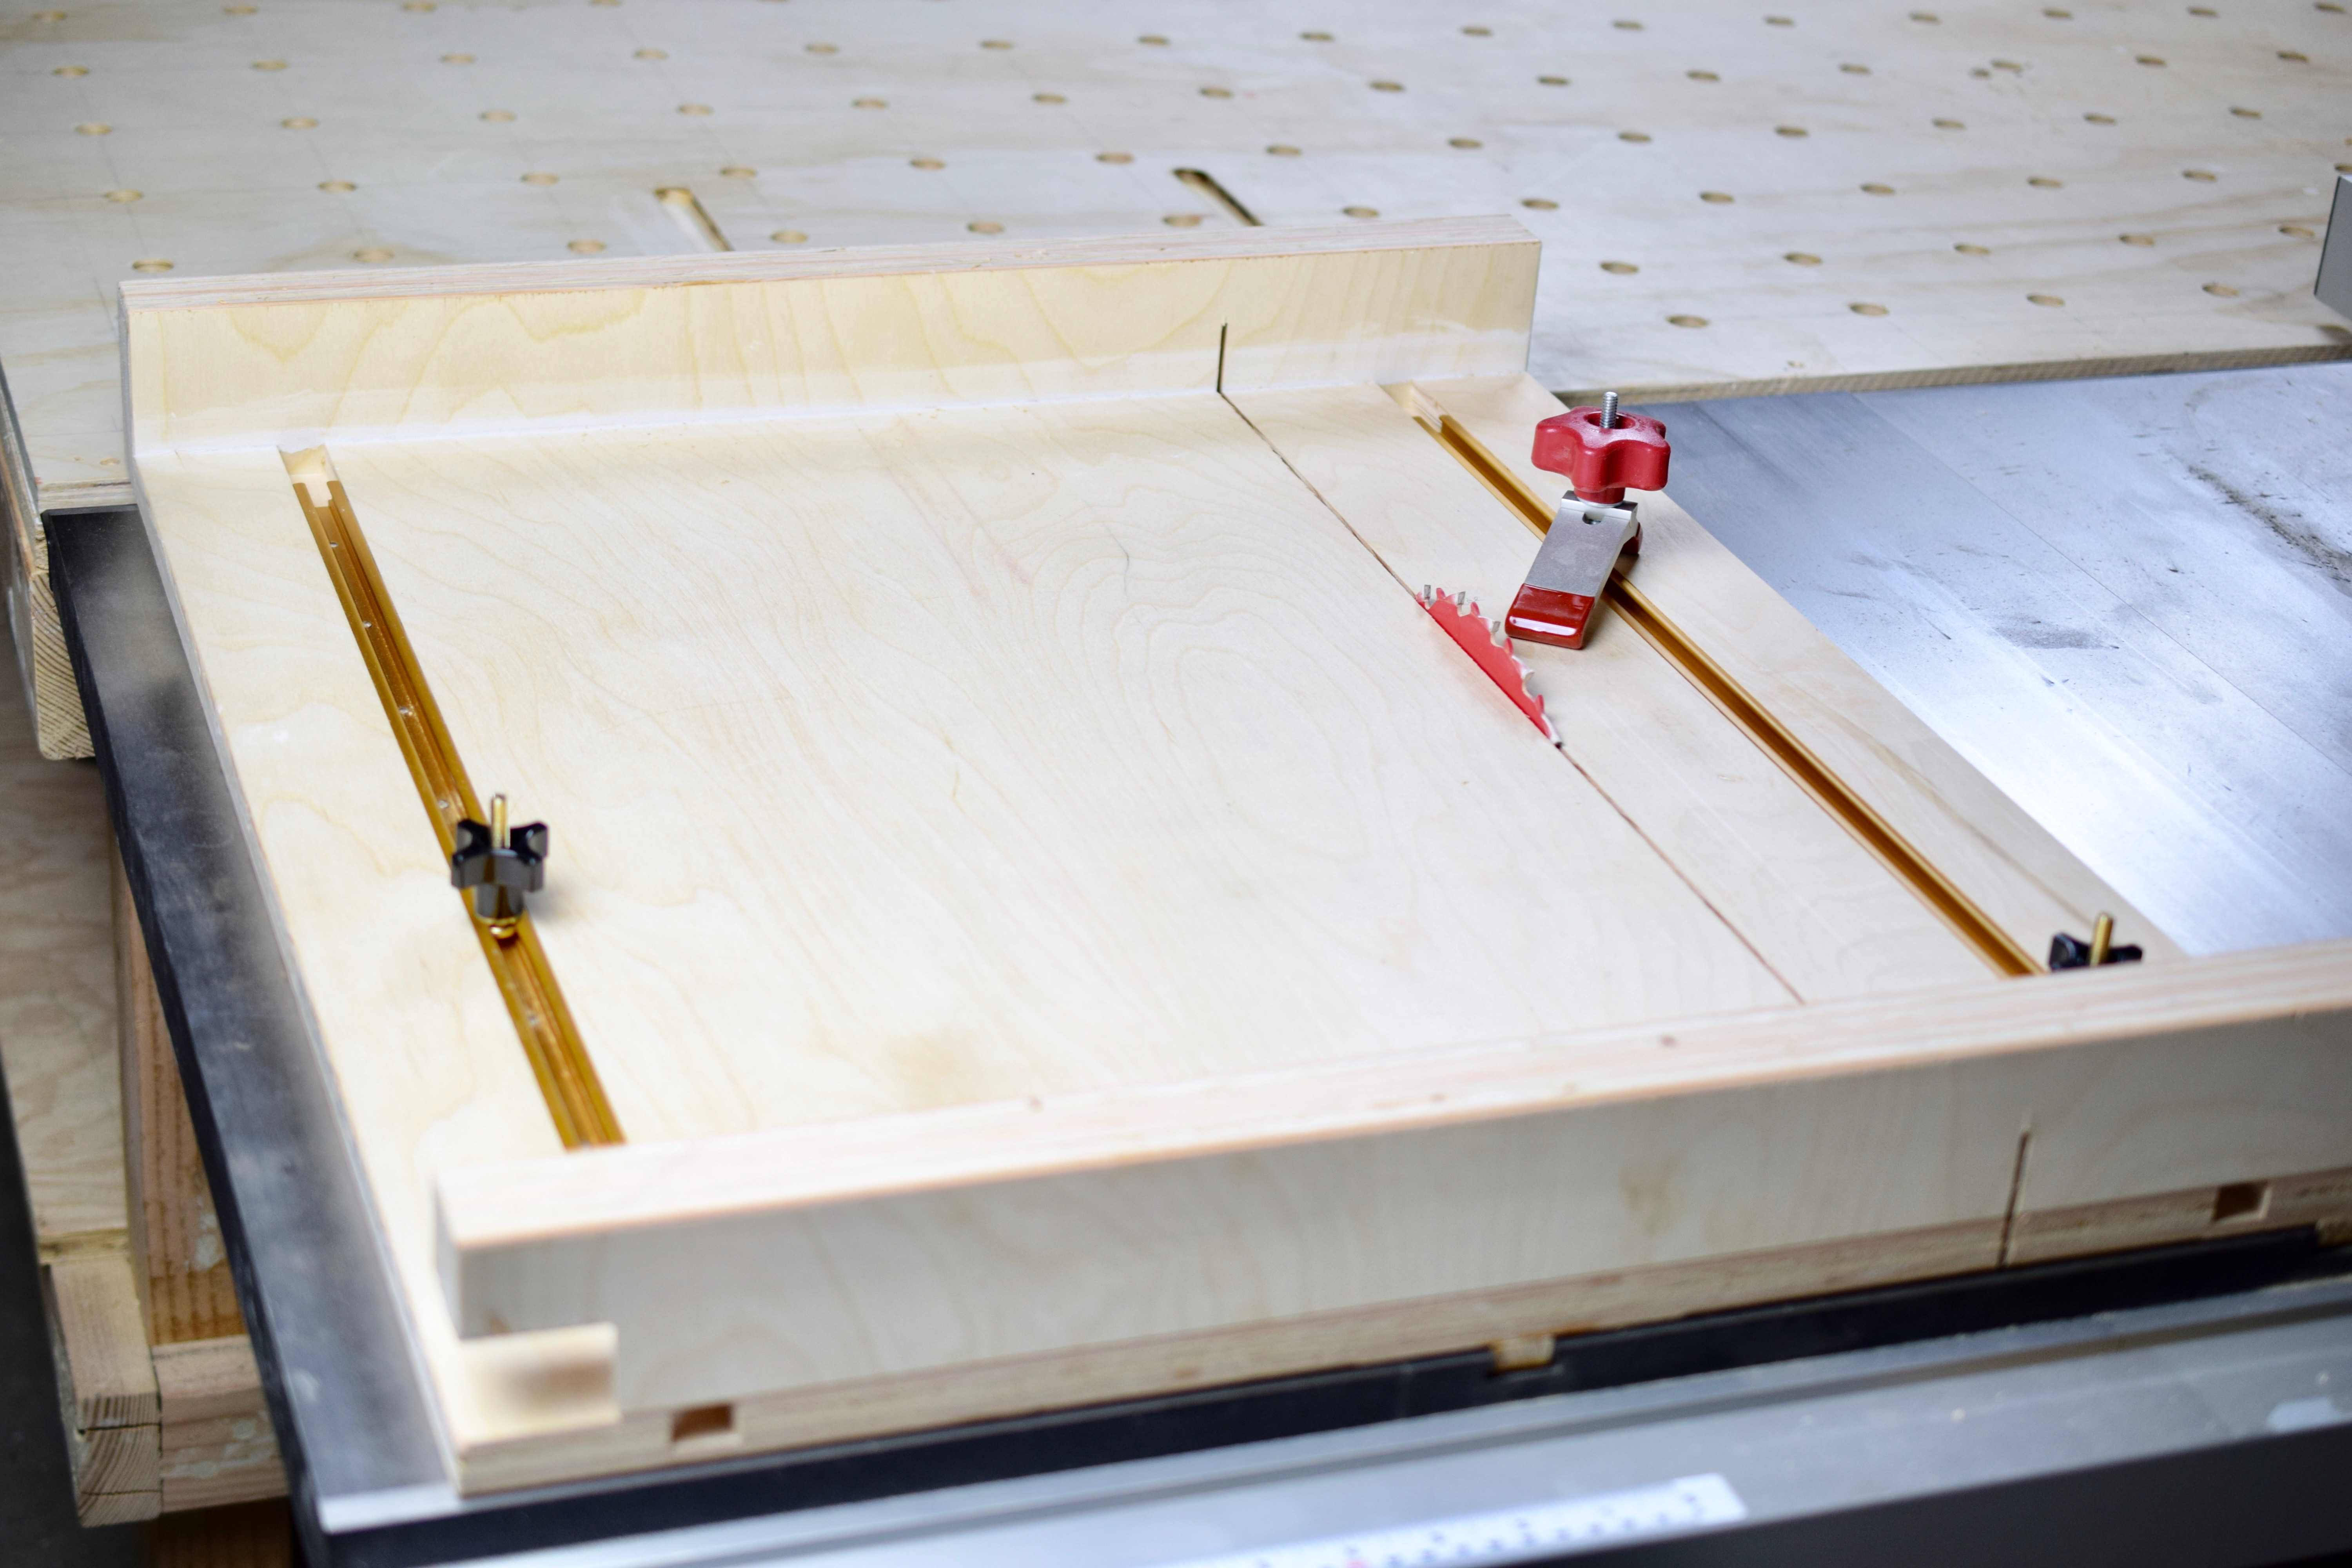 Table Saw Crosscut Sled Make A Crosscut Sled For Your